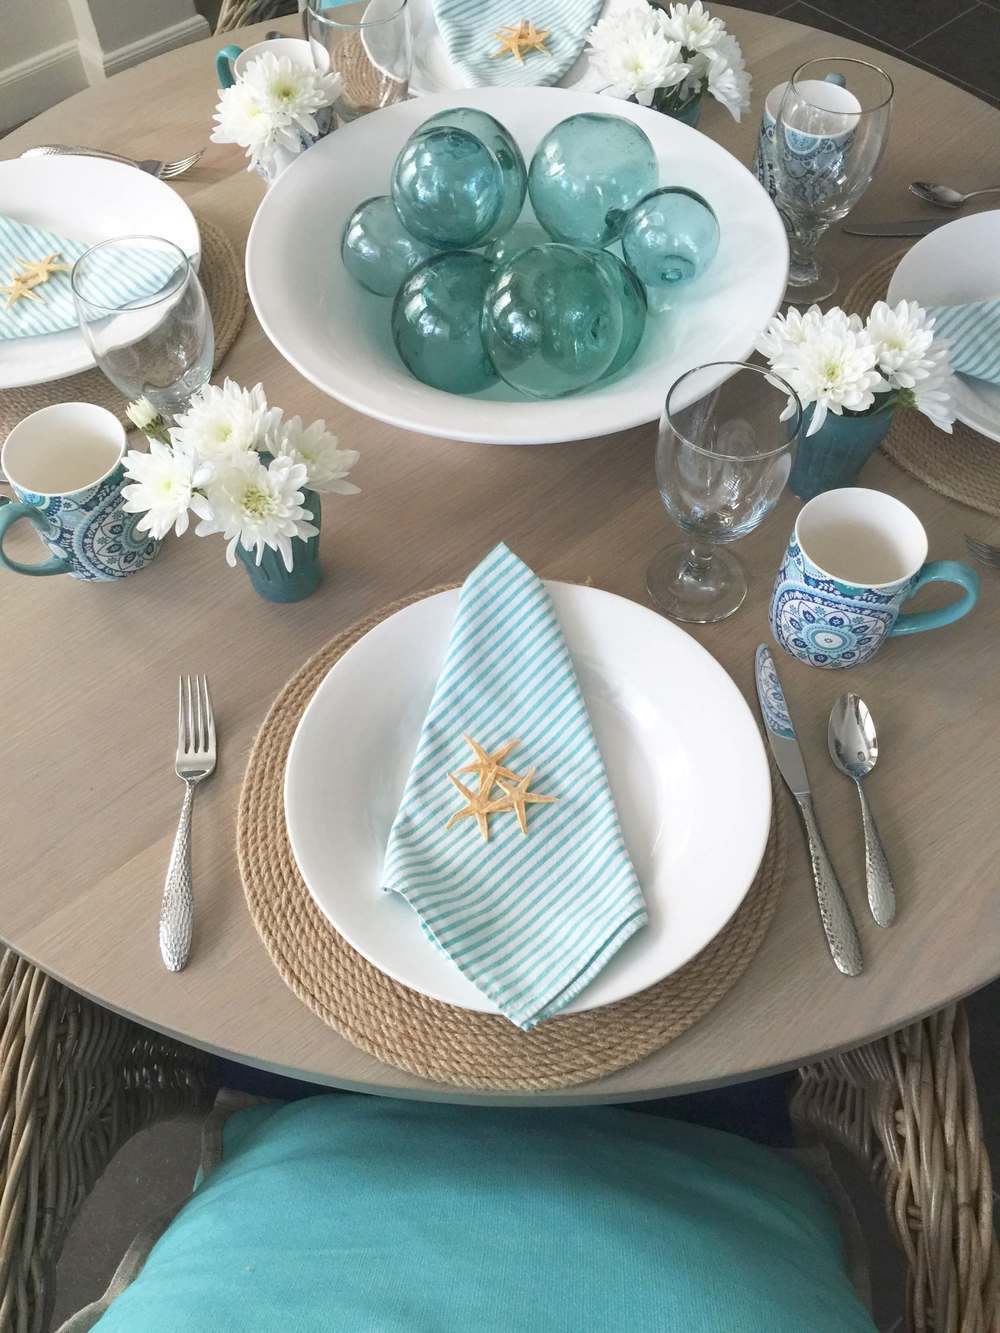 Coastal tabletop, beach inspired entertaining, turquoise and white | Interior Designer: Carla Aston